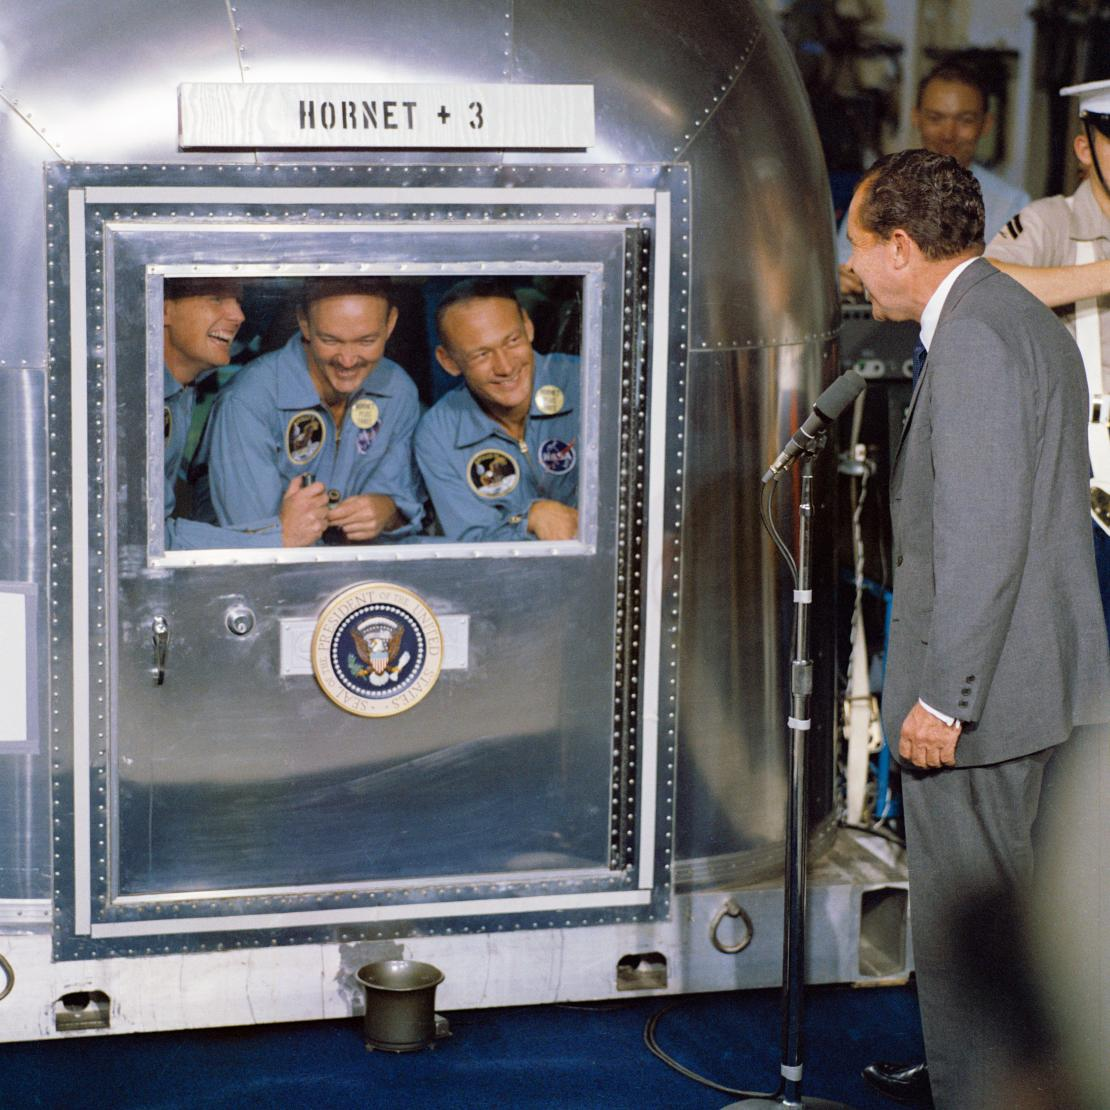 Image of President Nixon welcoming astronauts aboard the U S S Hornet.